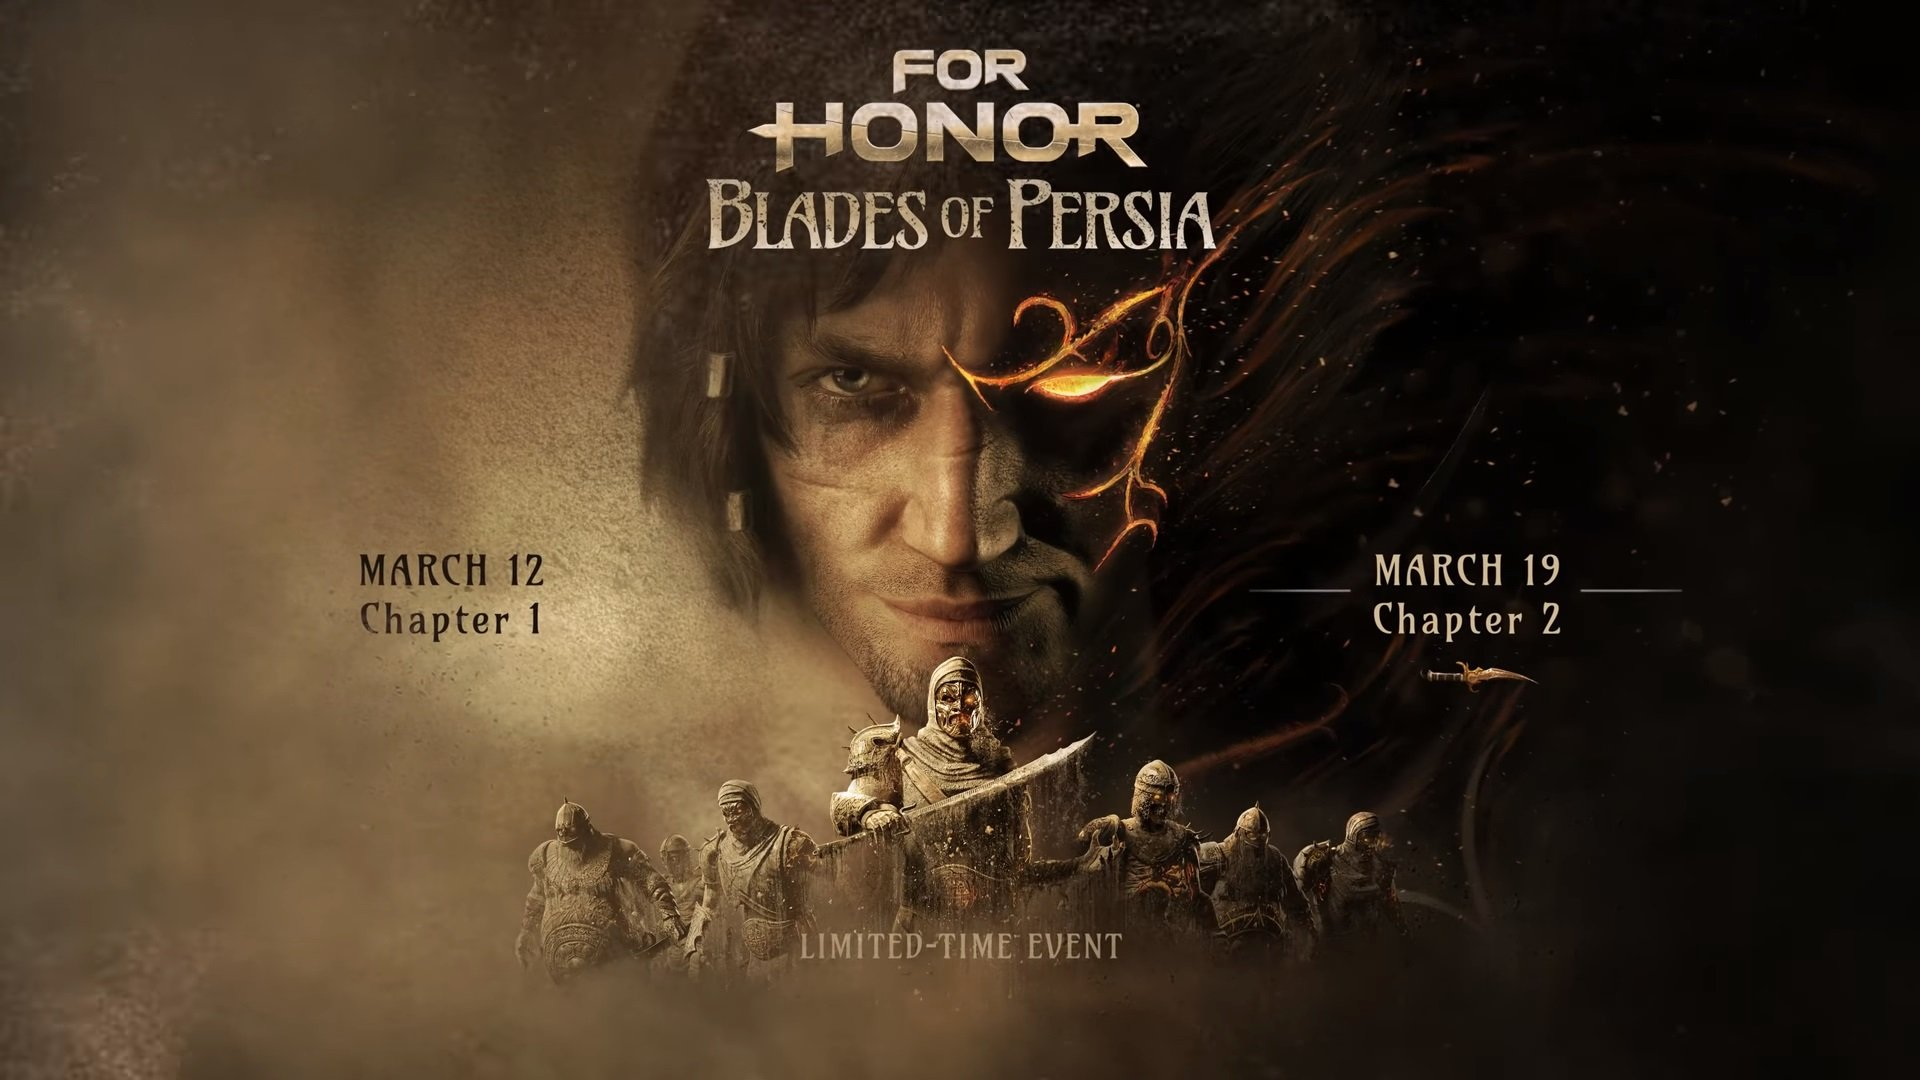 Ubisoft unveils Prince of Persia crossover in For Honor